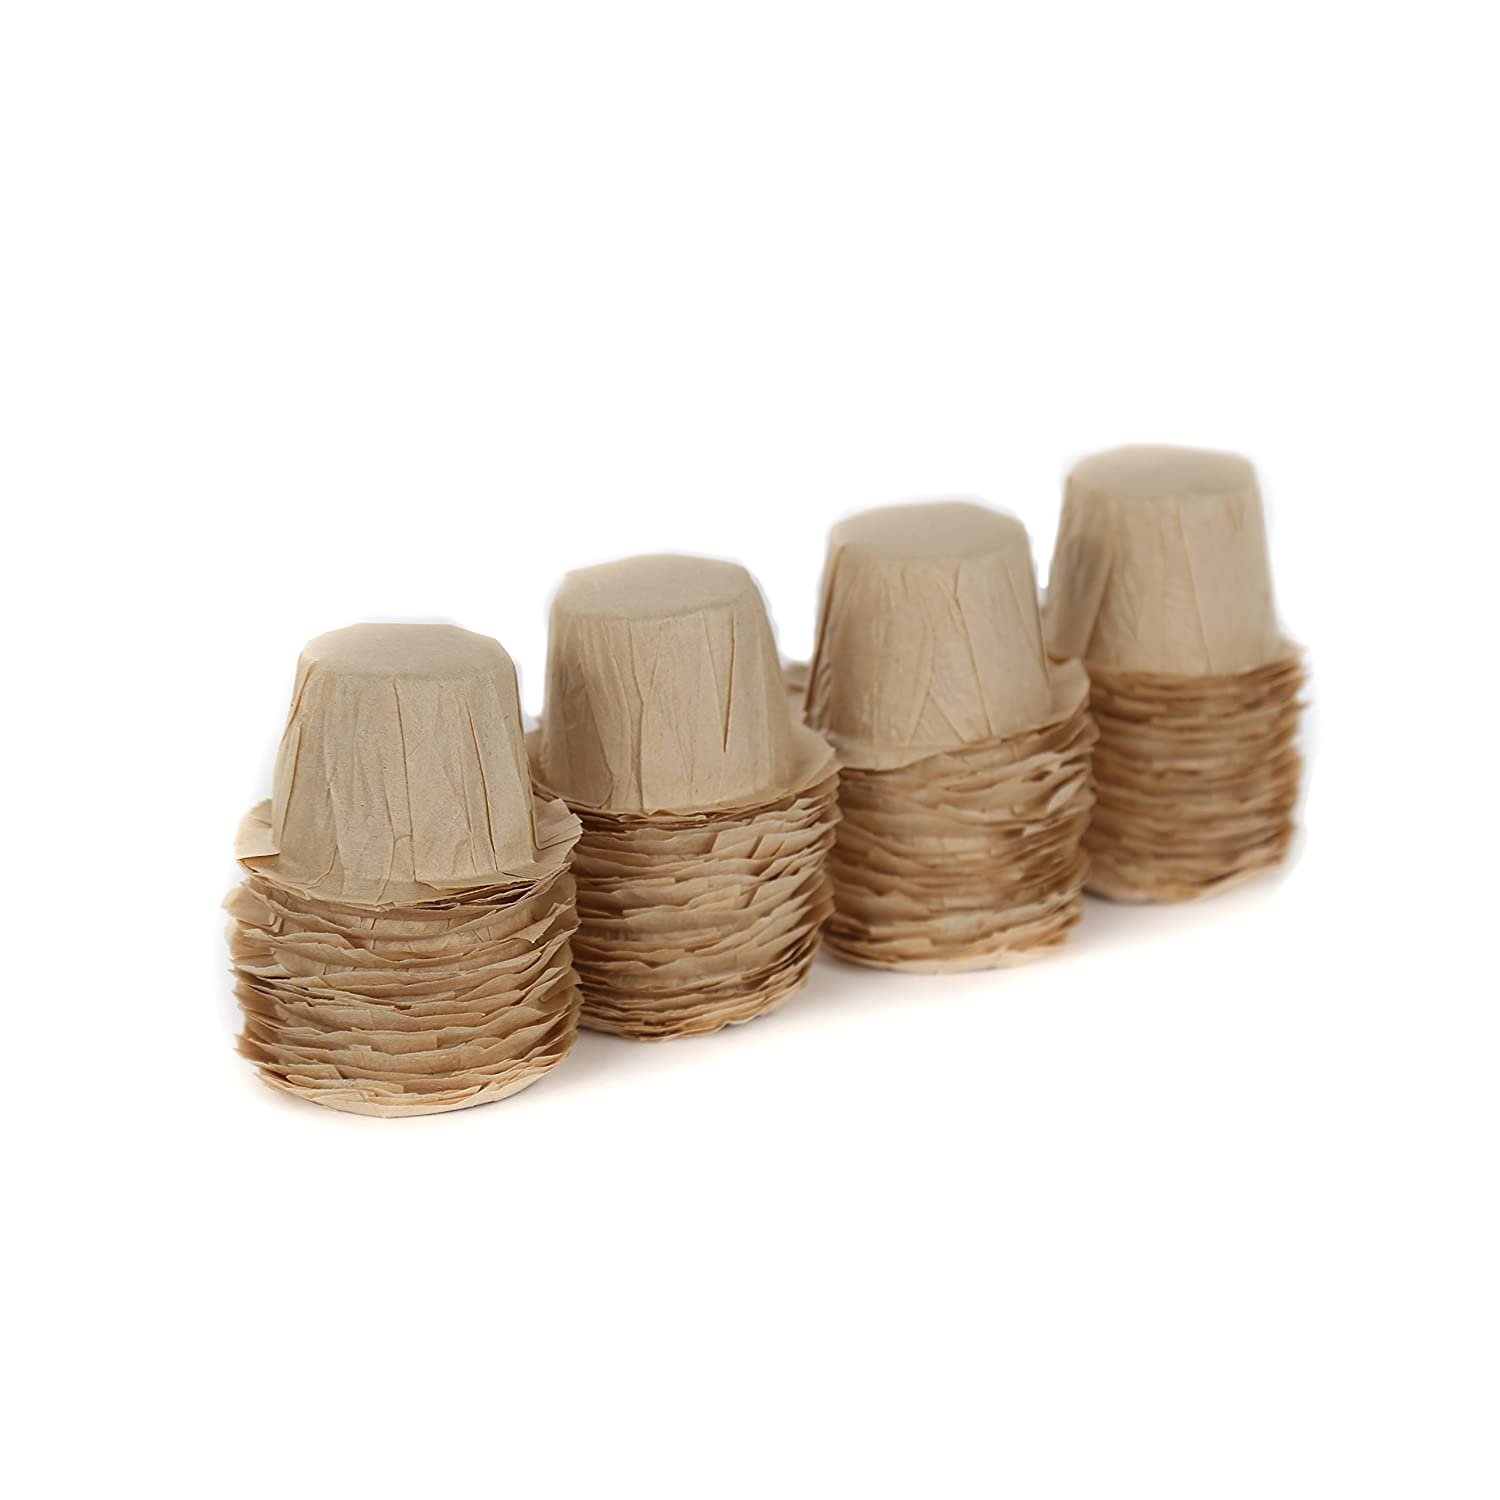 100 Disposable Natural Brown Coffee Filter Paper for Reusable Single Serve Keurig Brewer 1.0 and 2.0 - Refills for Reusable K-Cups - Marume Mie Cup MF-NB100